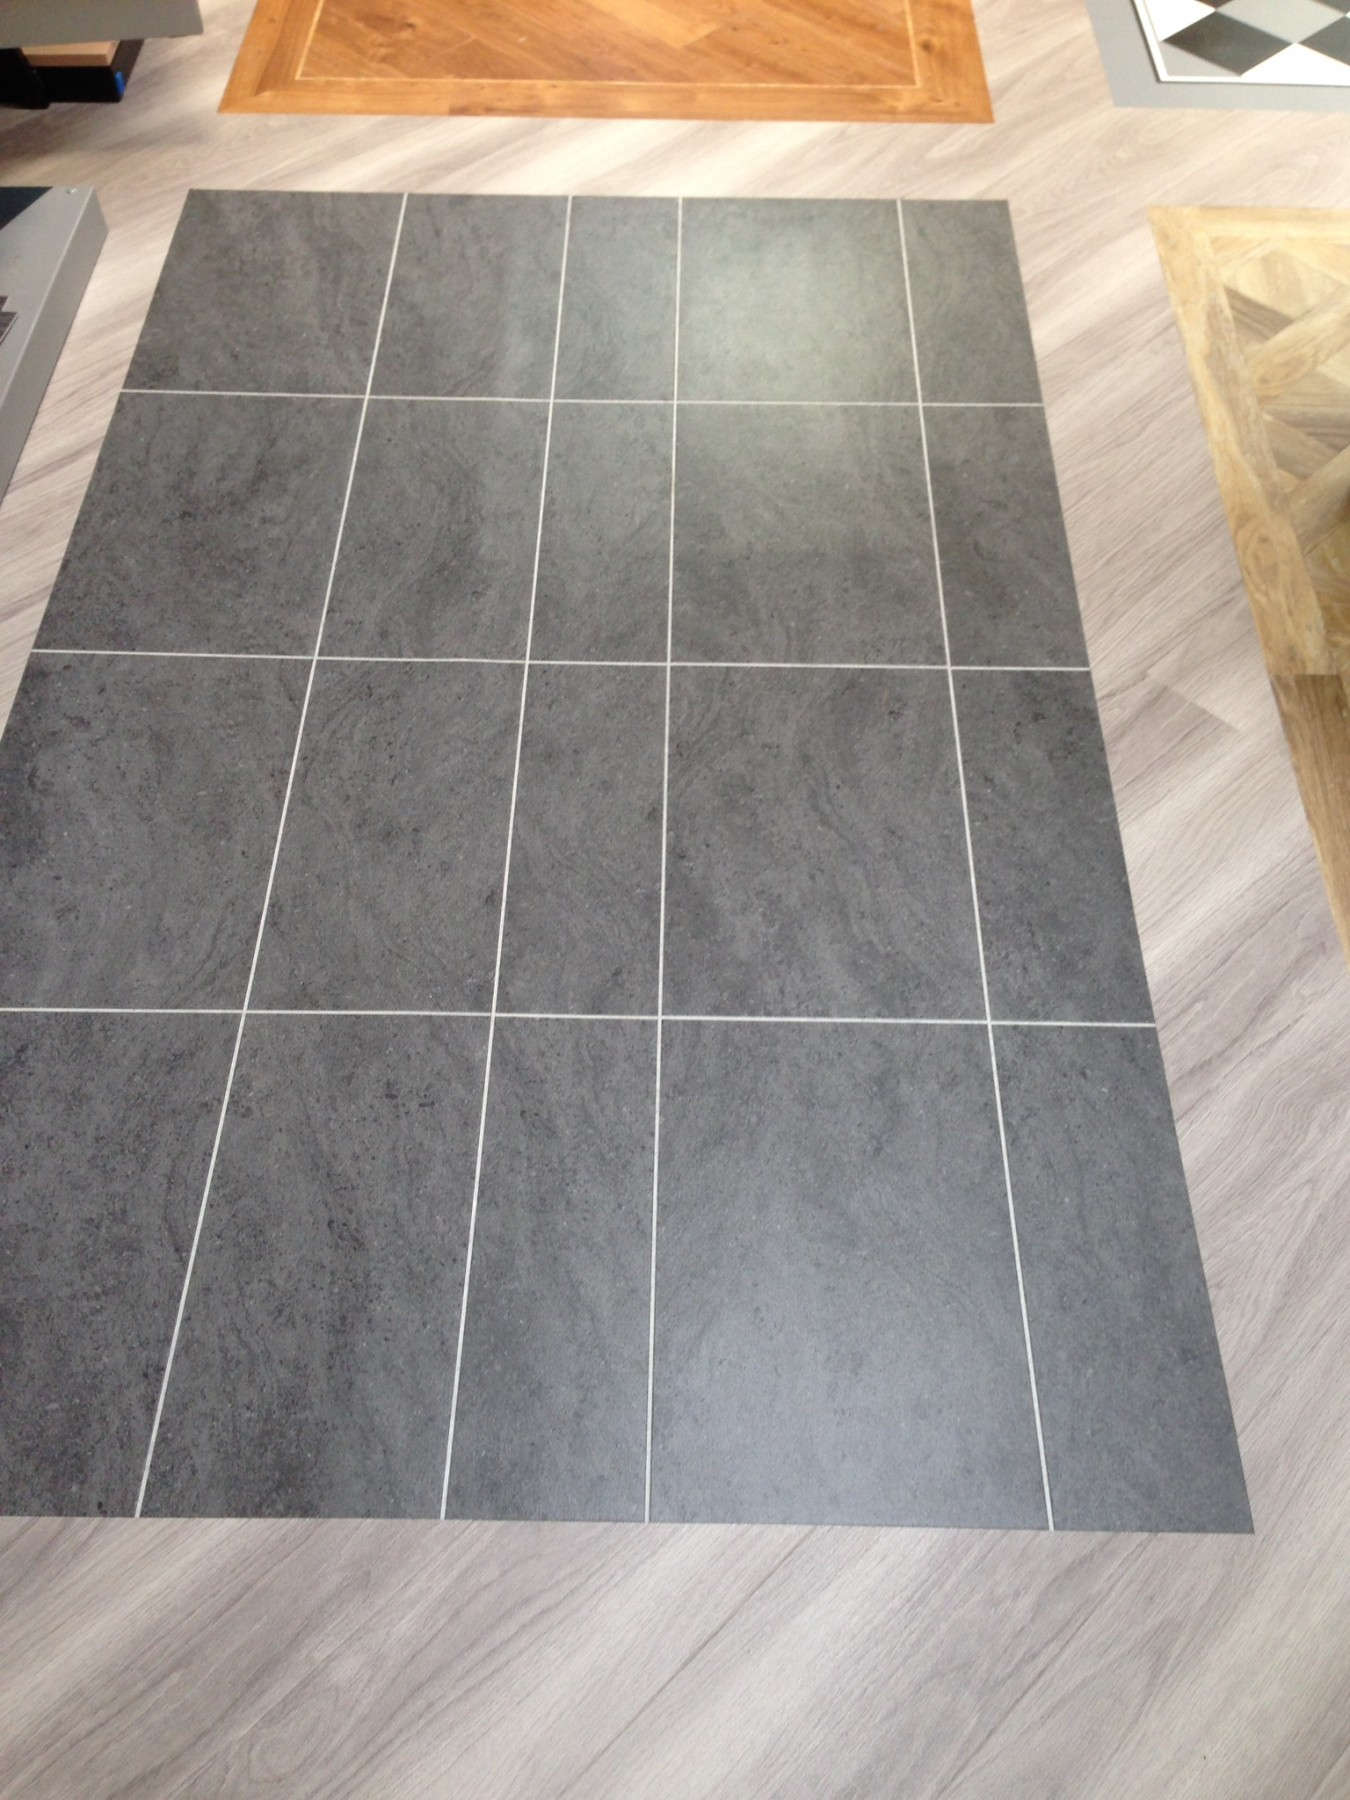 Light grey tile flooring with a dark grey tiling in the centre